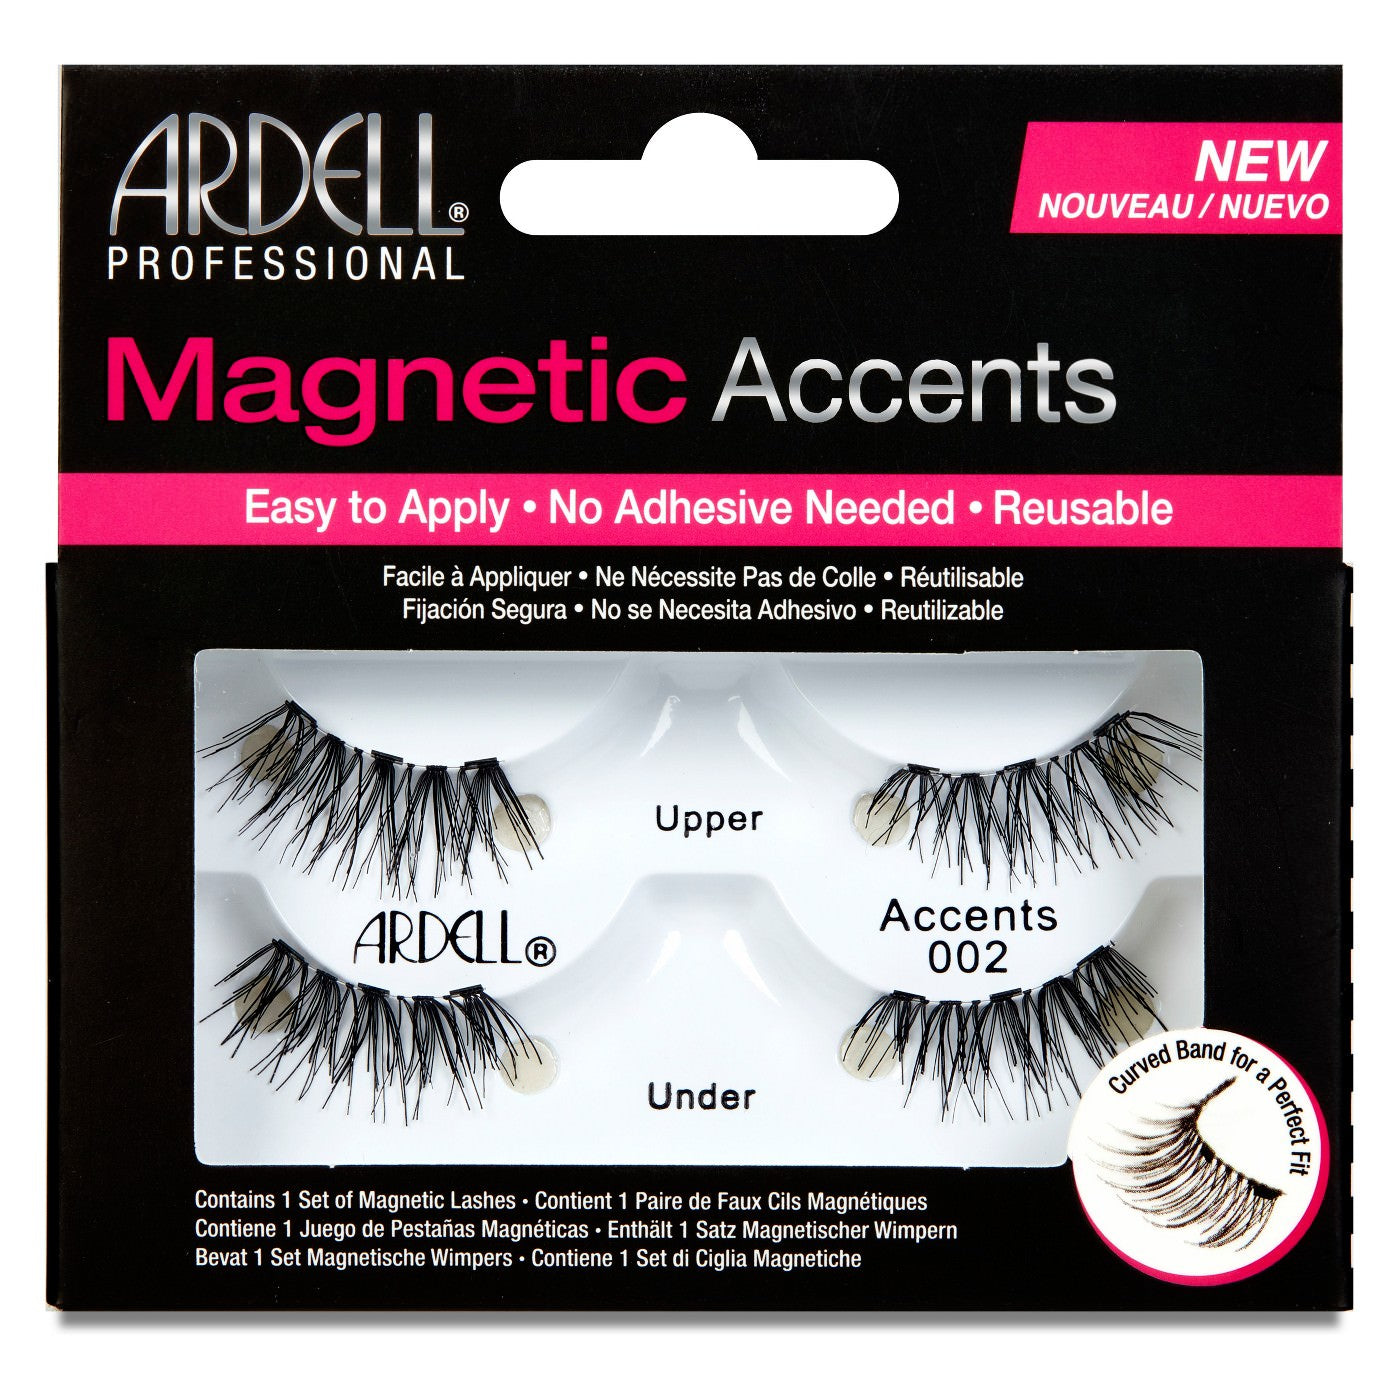 Ardell Accents #002 Magnetic Lash - Nails Plus Depot